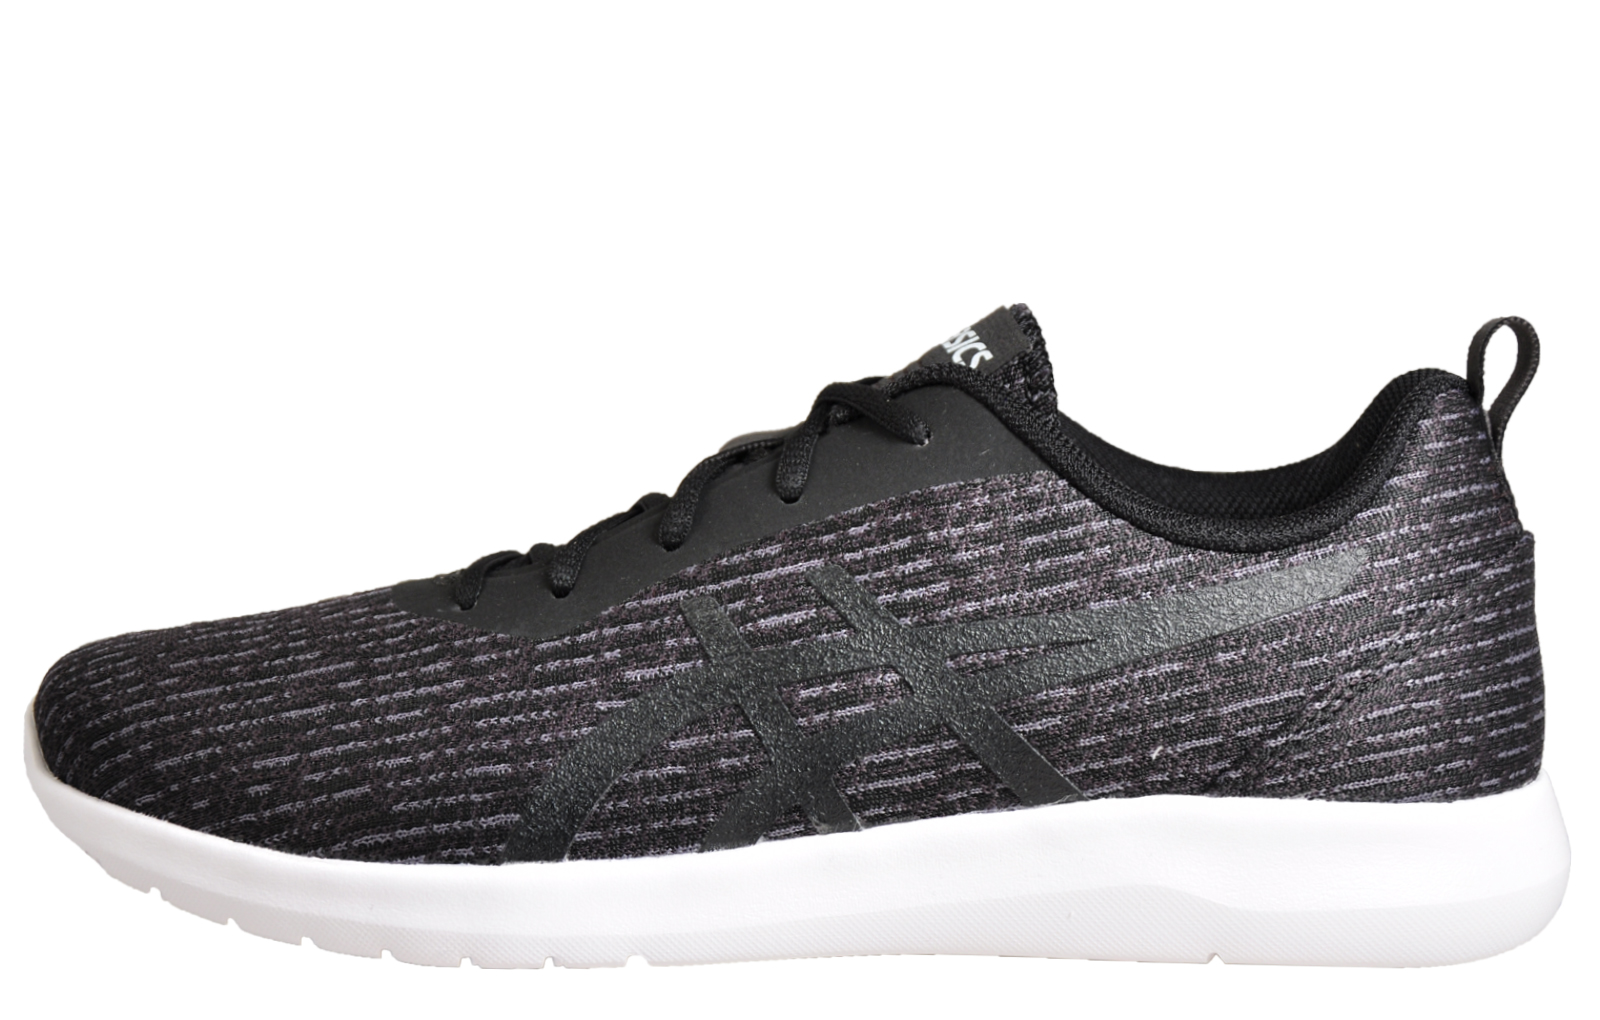 sale retailer d571b 144b6 Asics Kanmei 2 Men s Running Shoes Fitness Gym Workout Trainers Black